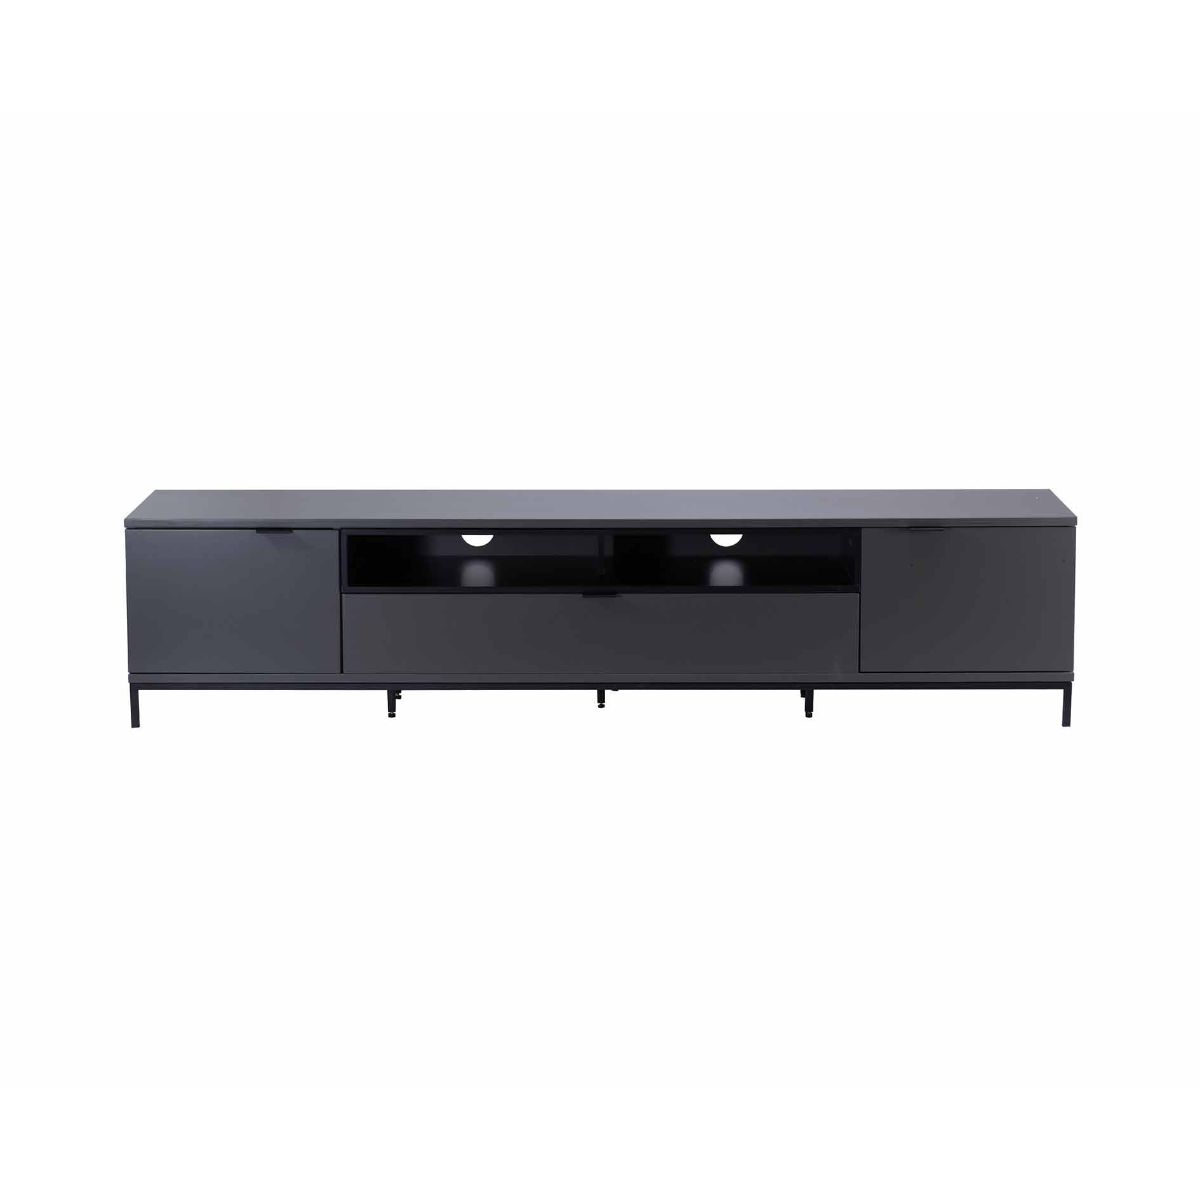 Alphason Chaplin 2000 TV Cabinet Black, Black